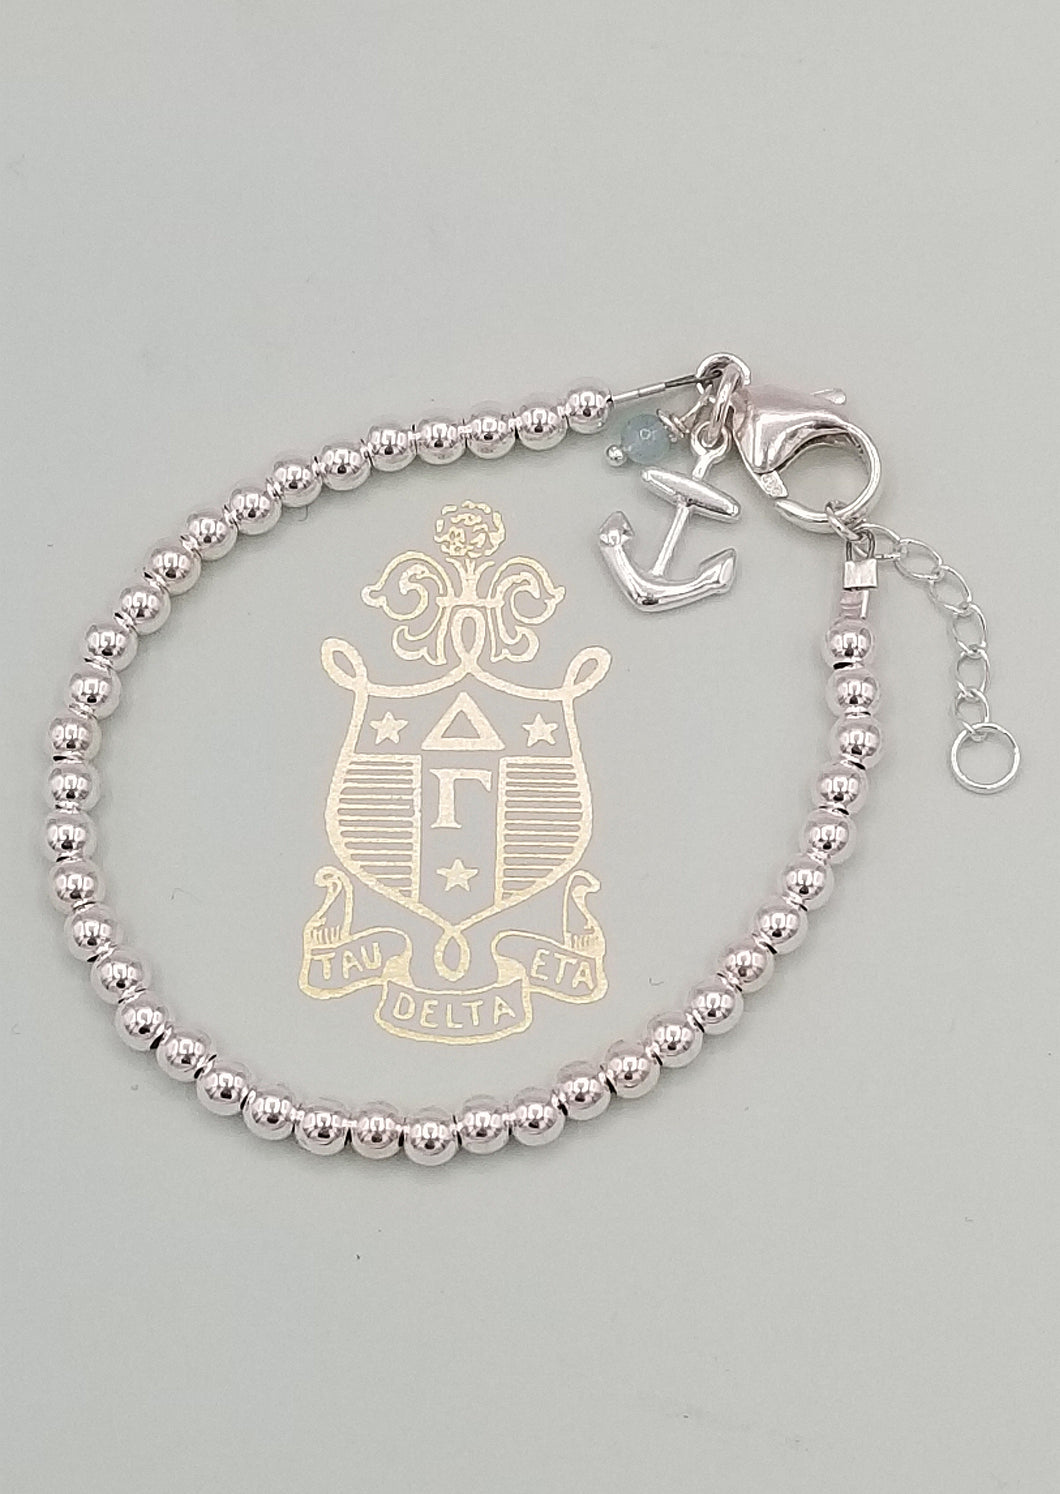 SPECIAL EDITION ANCHOR BRACELET - 25 YEARS OF DELTA GAMMA MEMBERSHIP